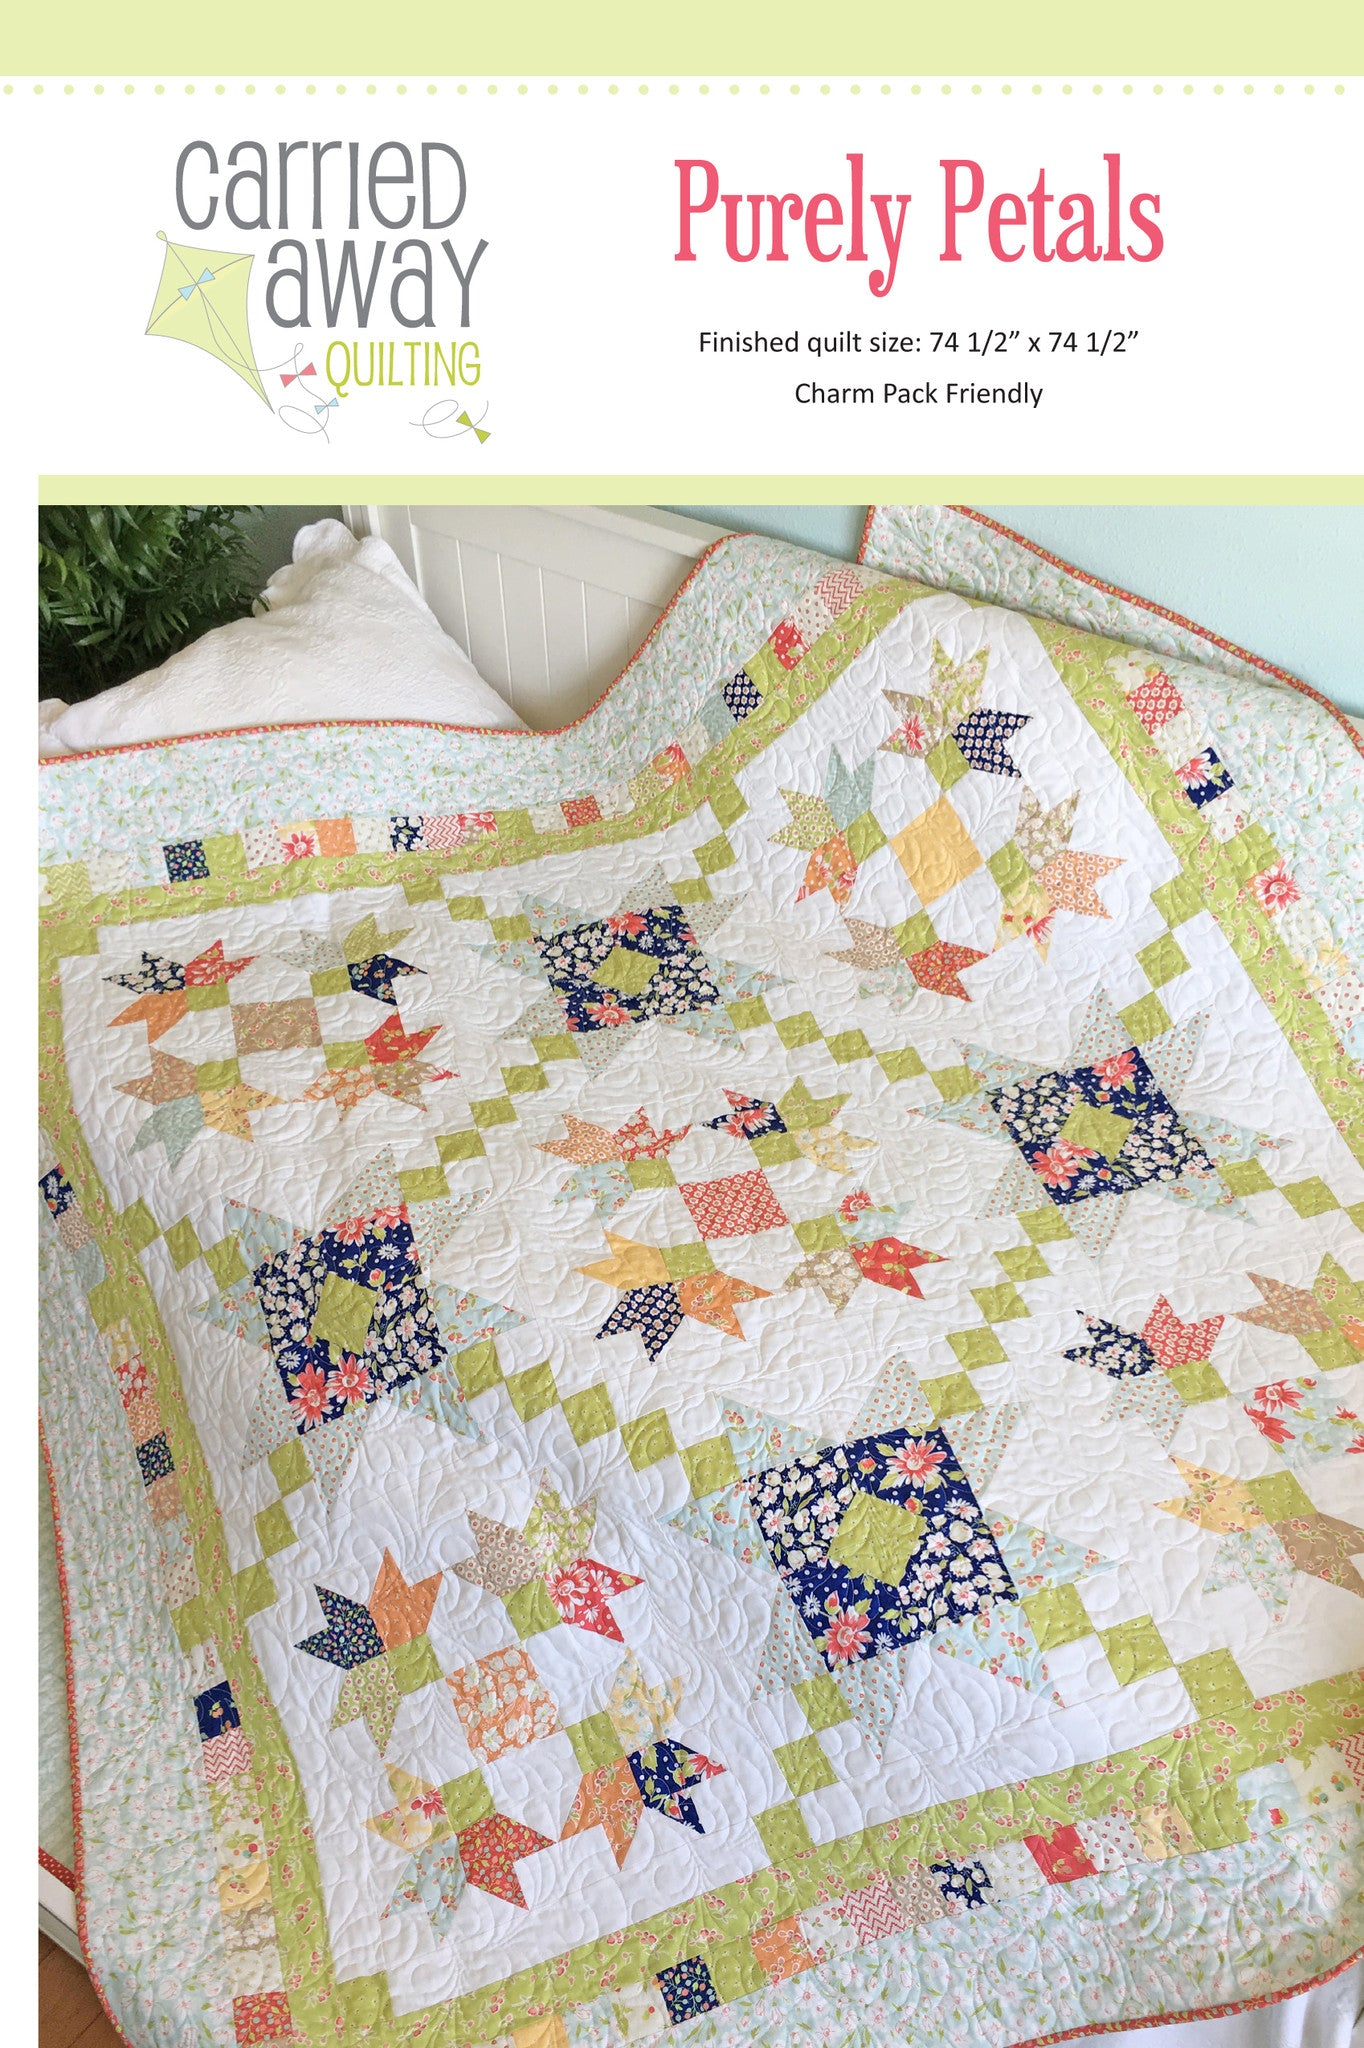 Purely Petals Quilt Pattern by Taunja Kelvington of Carried Away Quilting